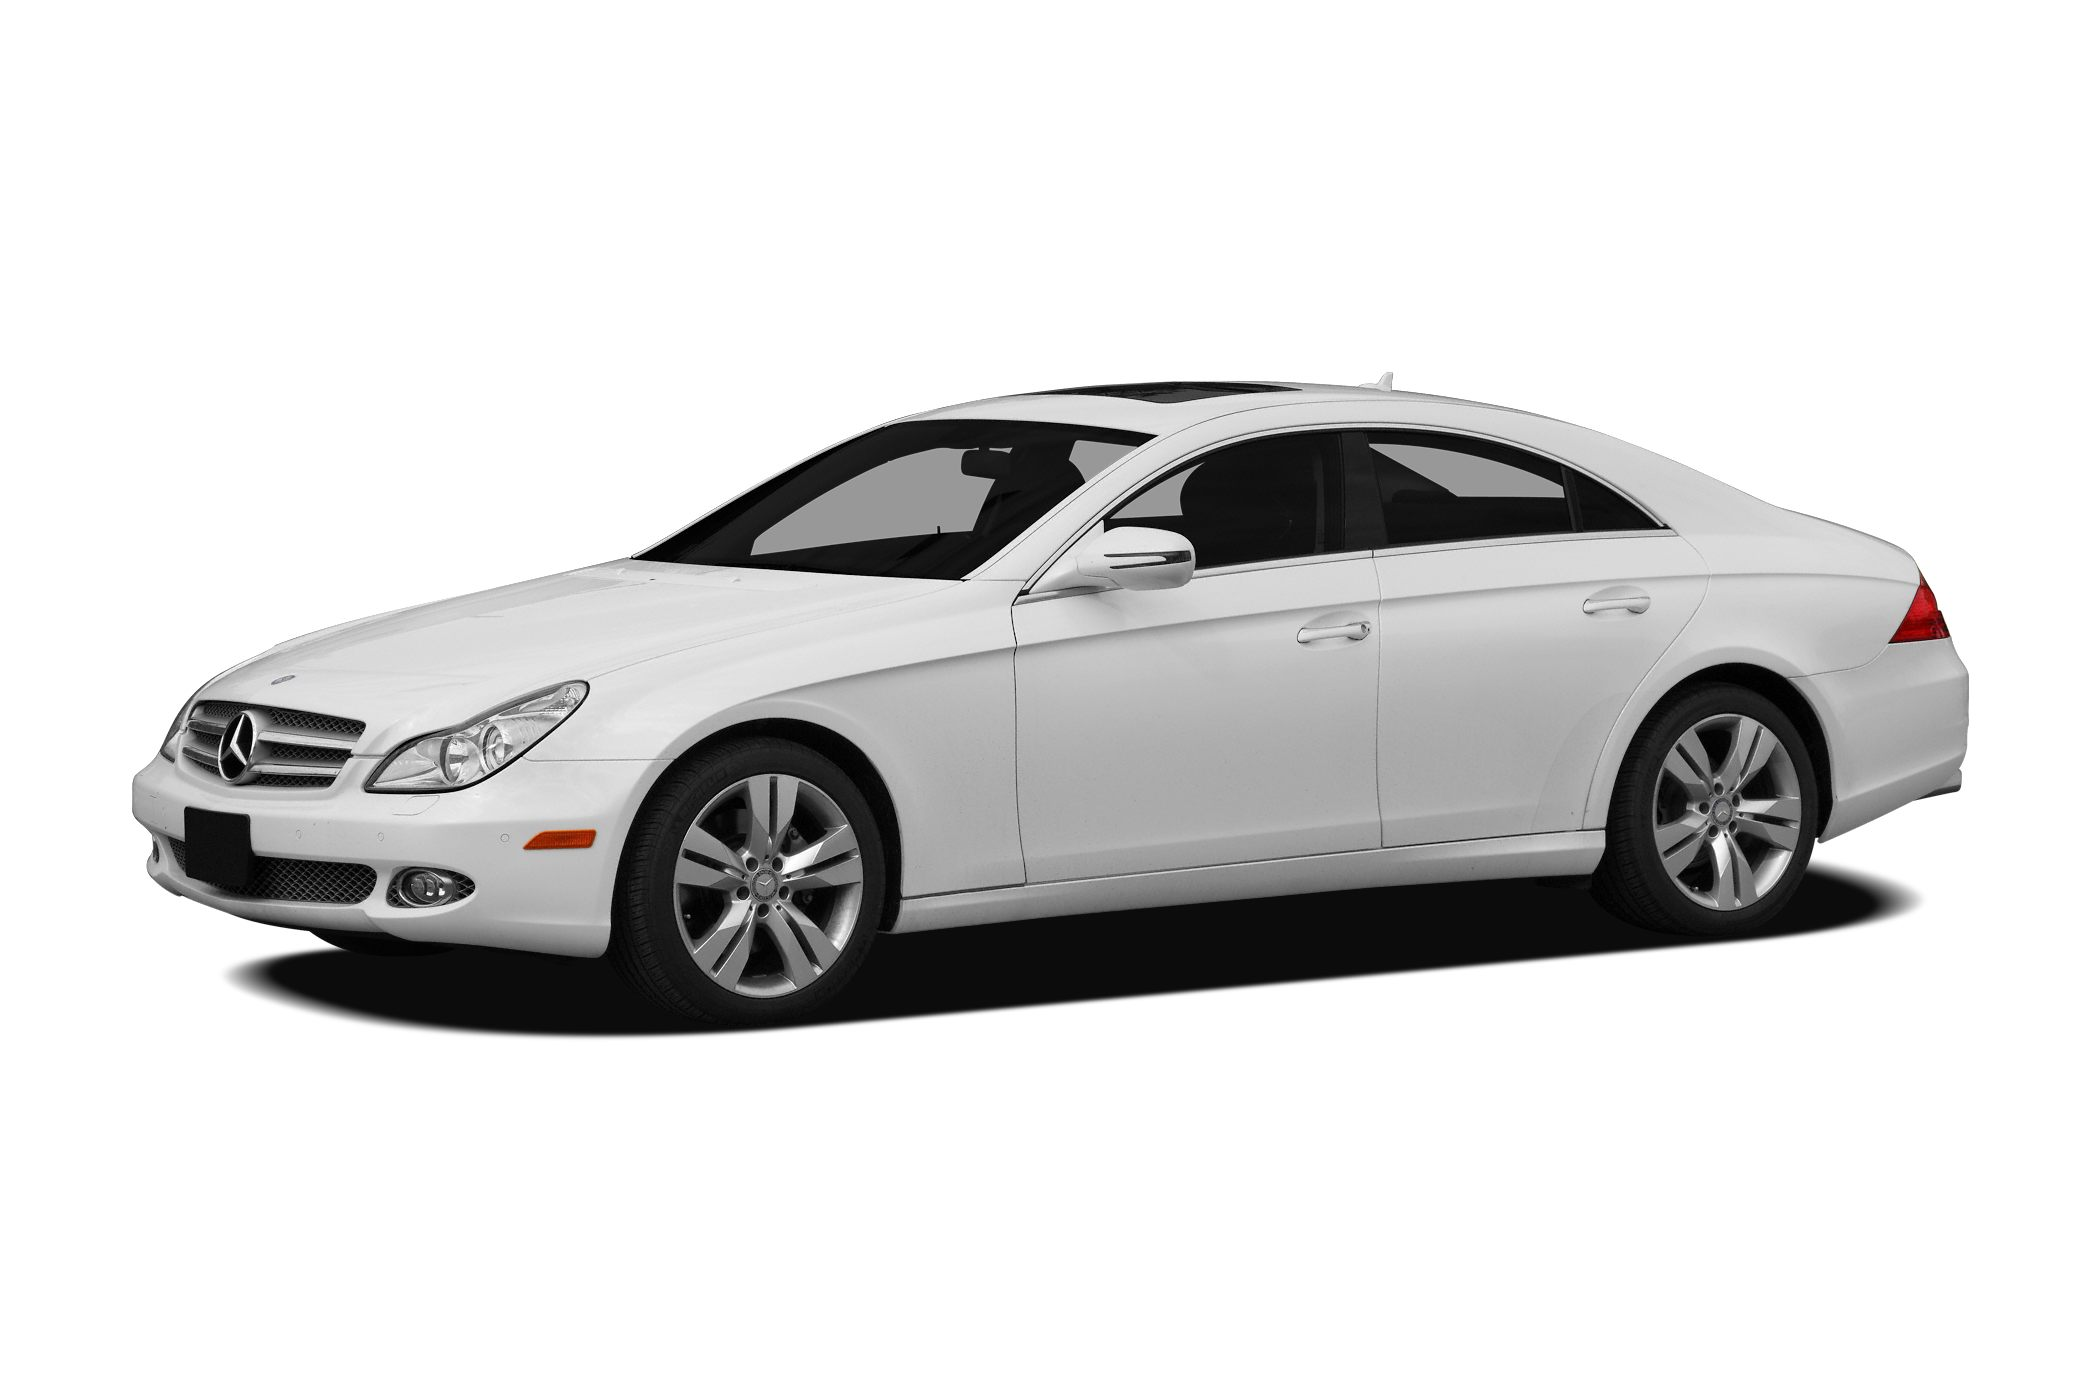 2009 Mercedes-Benz CLS-Class CLS550 Sedan for sale in Fullerton for $27,999 with 44,063 miles